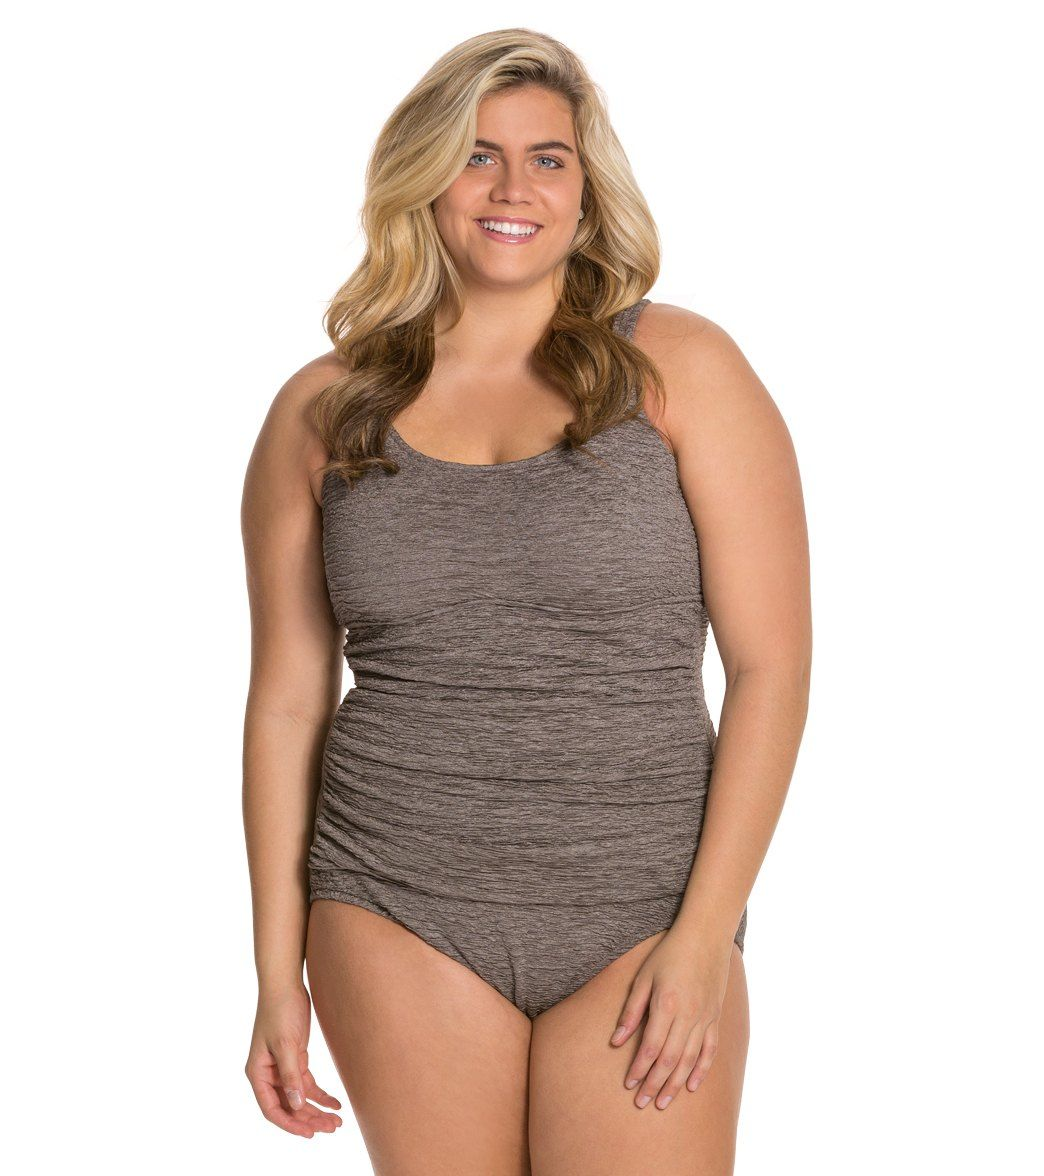 01bf5cdc0b3 Penbrooke Plus Size Krinkle Empire Mio Chlorine Resistant One Piece at  SwimOutlet.com - The